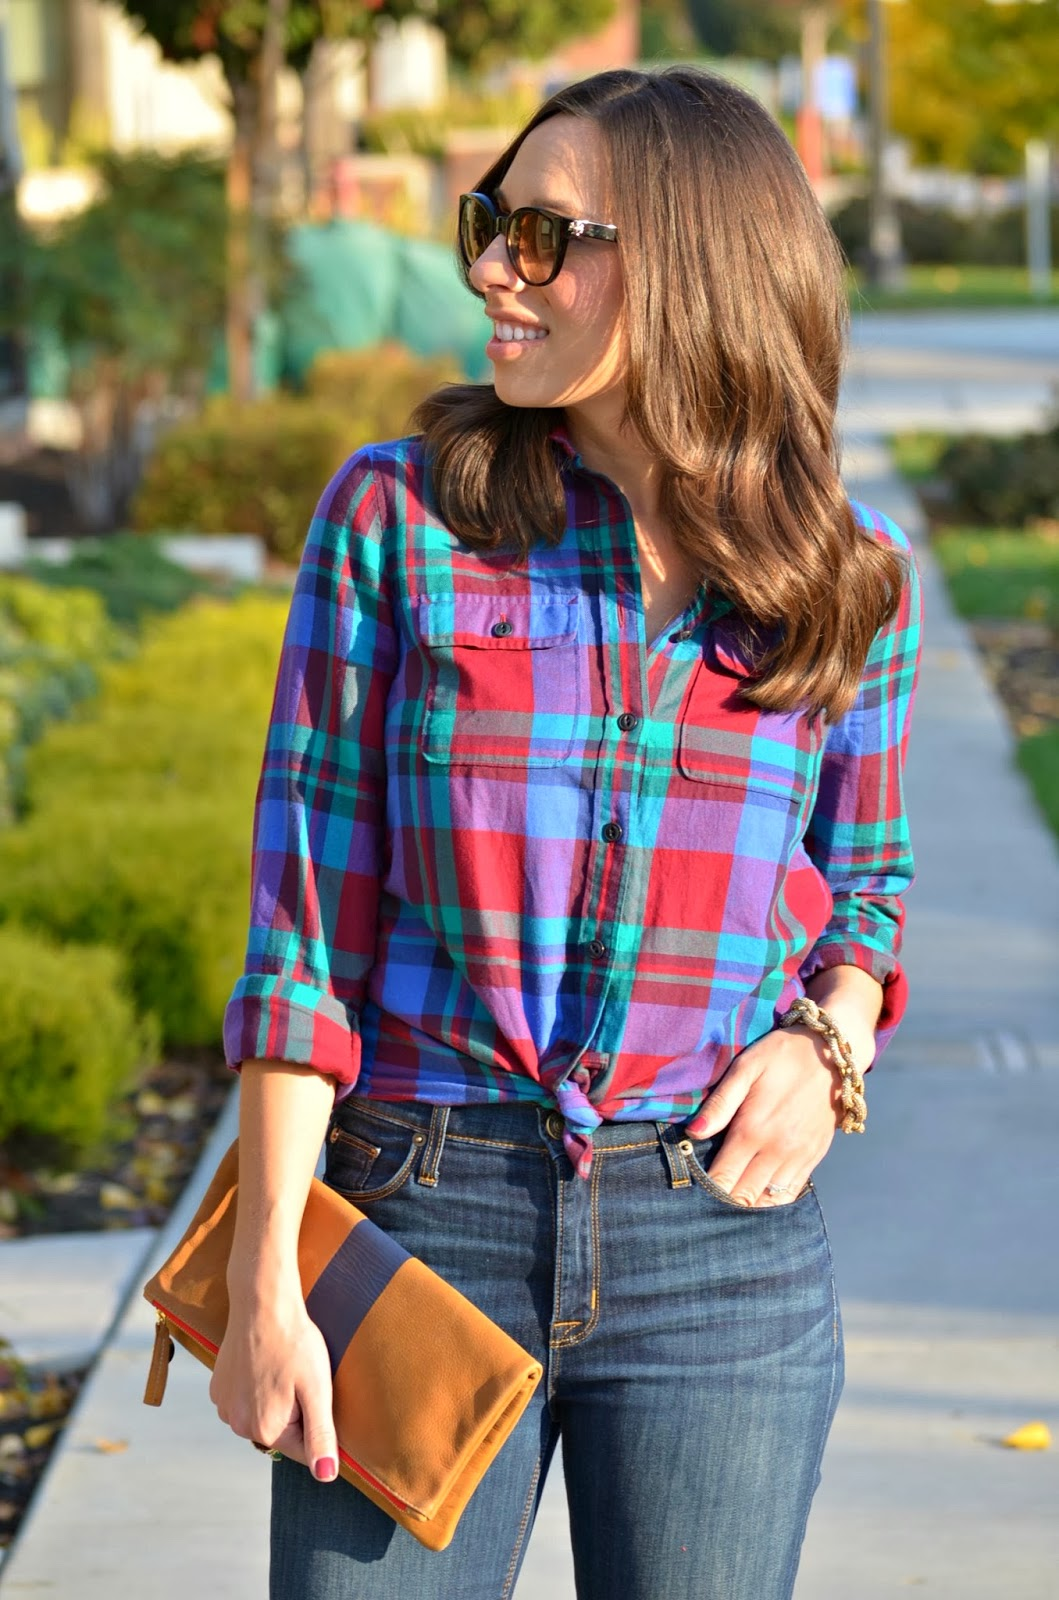 Dressing up a flannel shirt